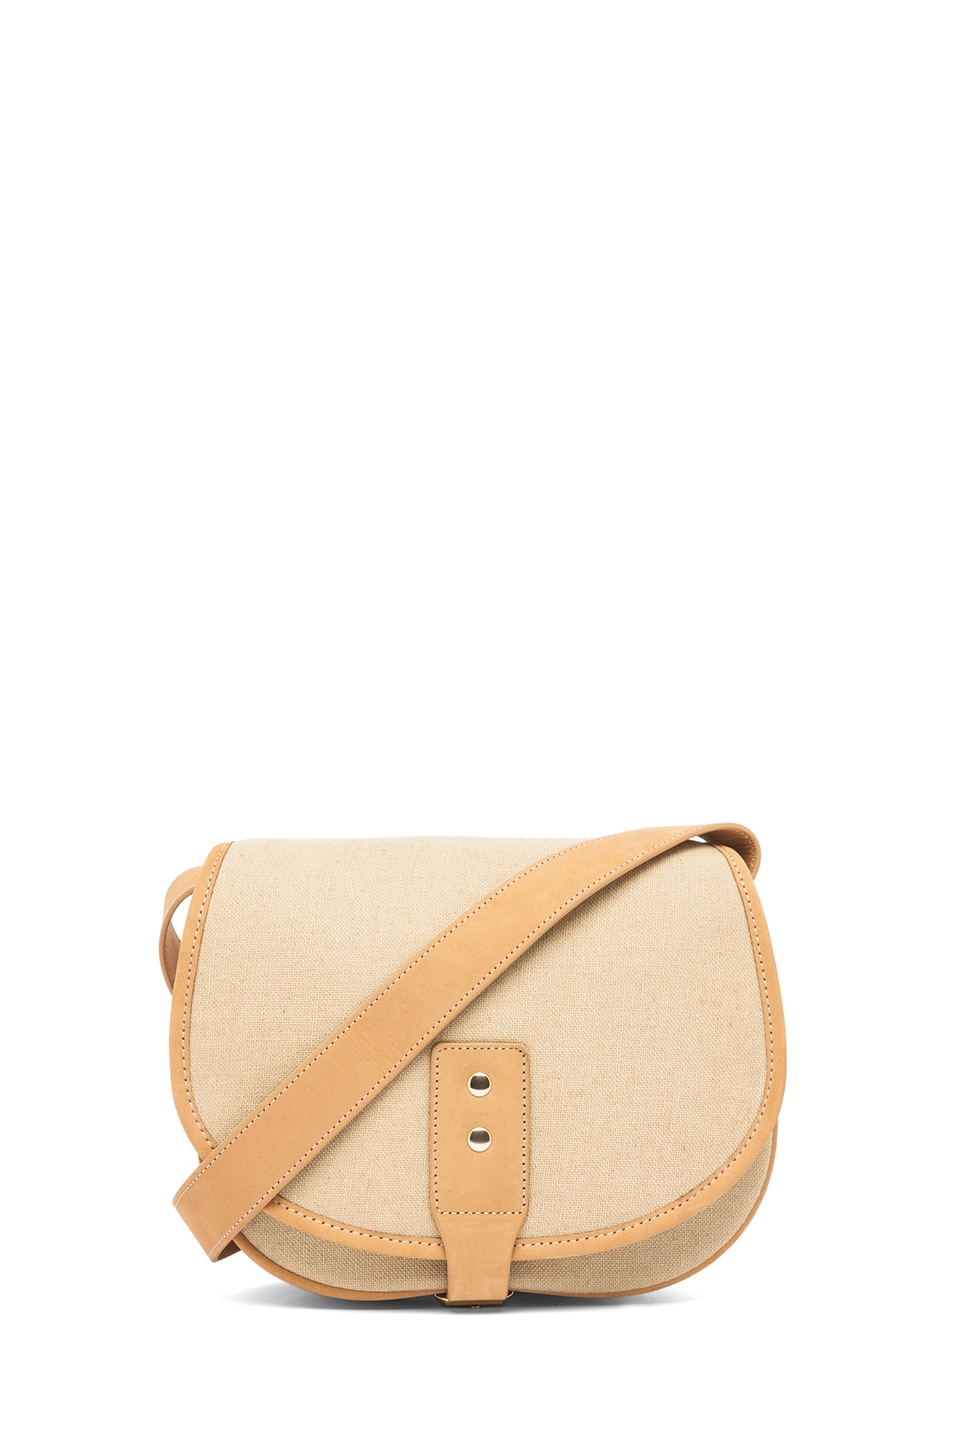 Image 1 of A.P.C. Toile Coton Sac Besace in Beige